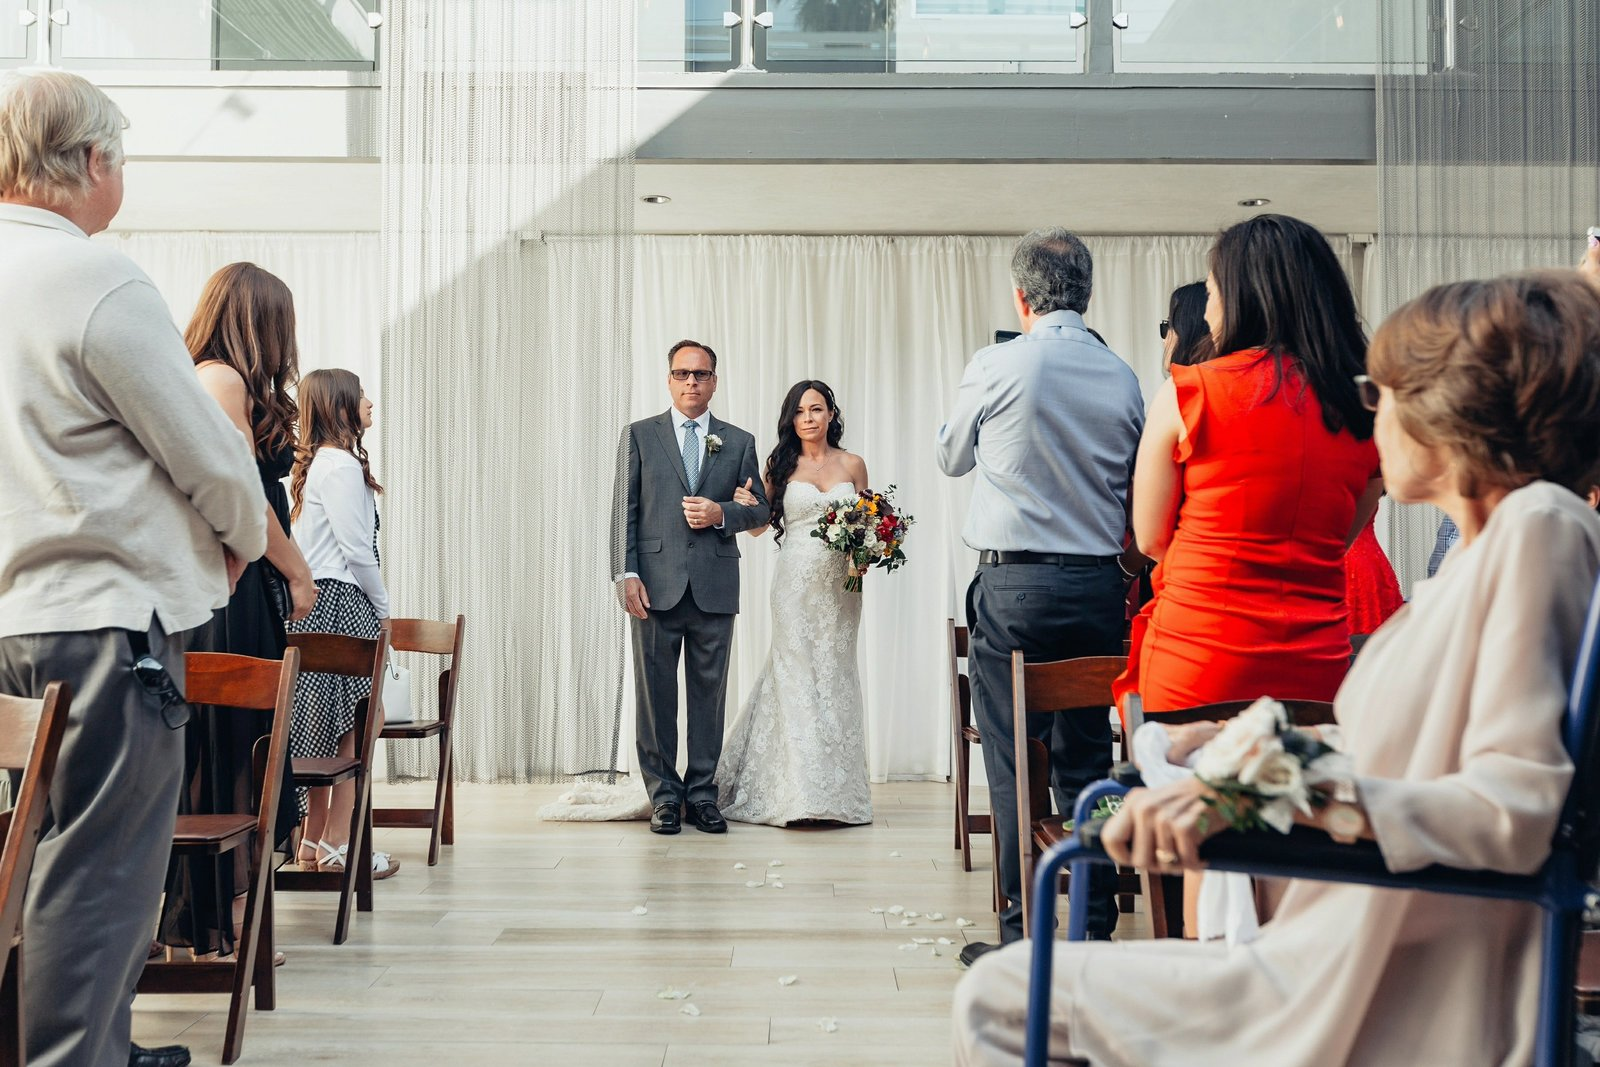 741hotel-laguna-beach-wedding38